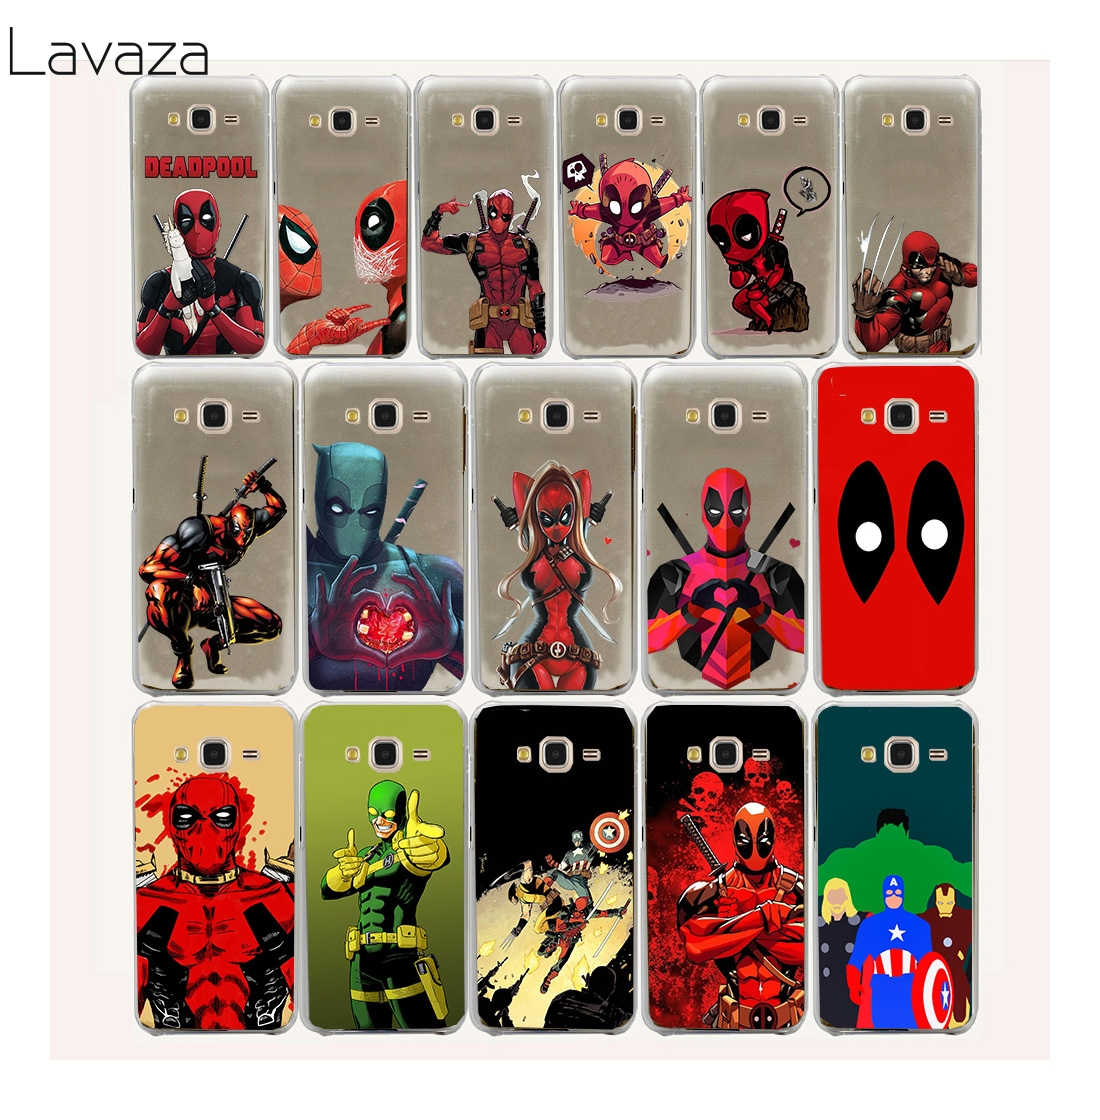 Lavaza 12FF Asker Deadpool Hard Case samsung Galaxy J3 2015 KAPAK coque